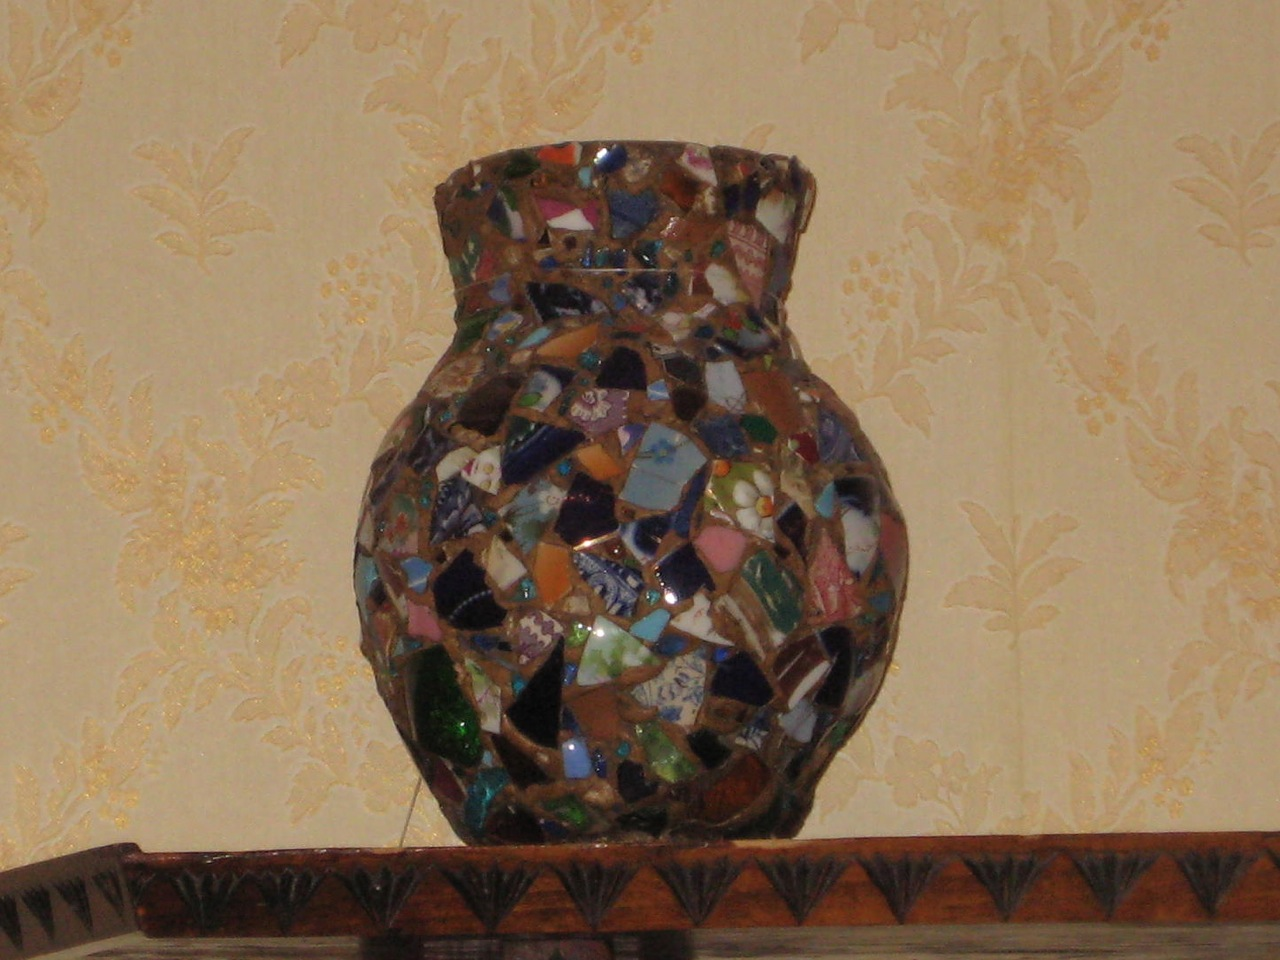 vase-made-by-anna-golubkina-on-display-in-the-memorial-museum